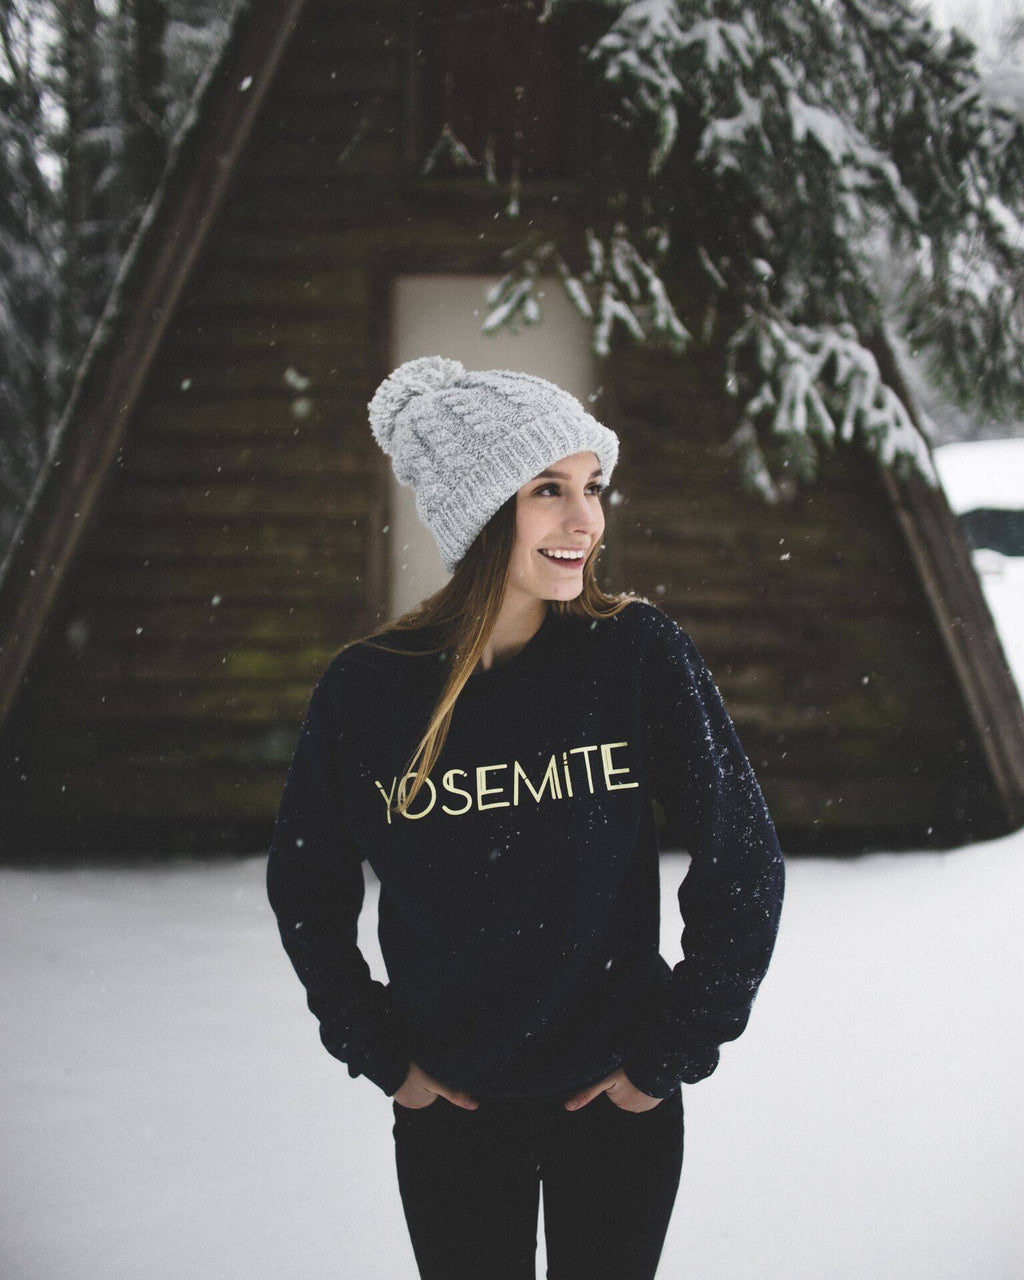 The Parks Yosemite Crewneck - The Parks Apparel